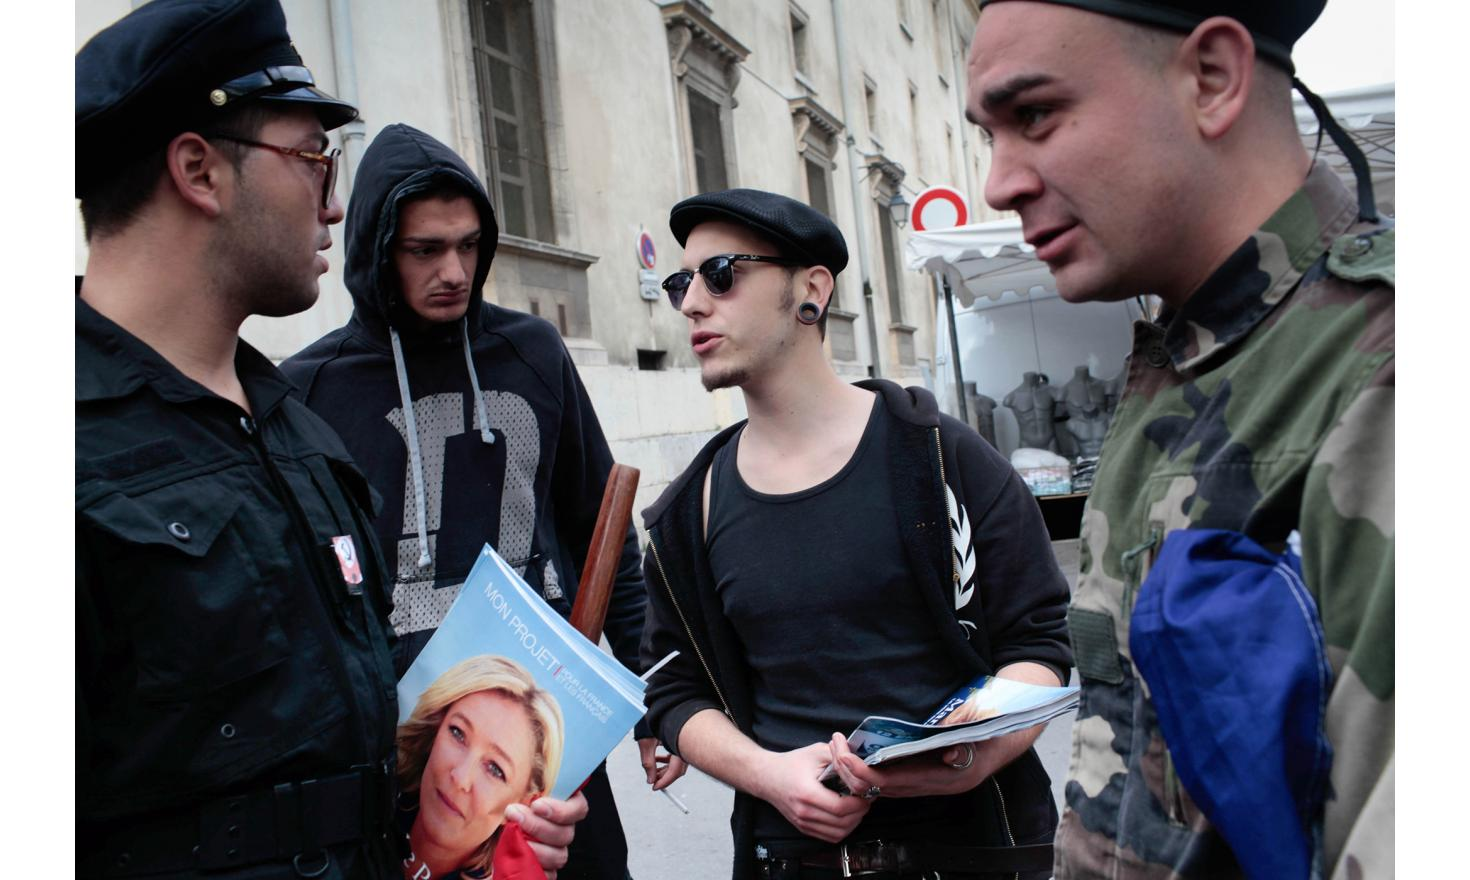 Aix, April 7, 2012. MNBF's (French Nazbol) Activist with FN's flyers.